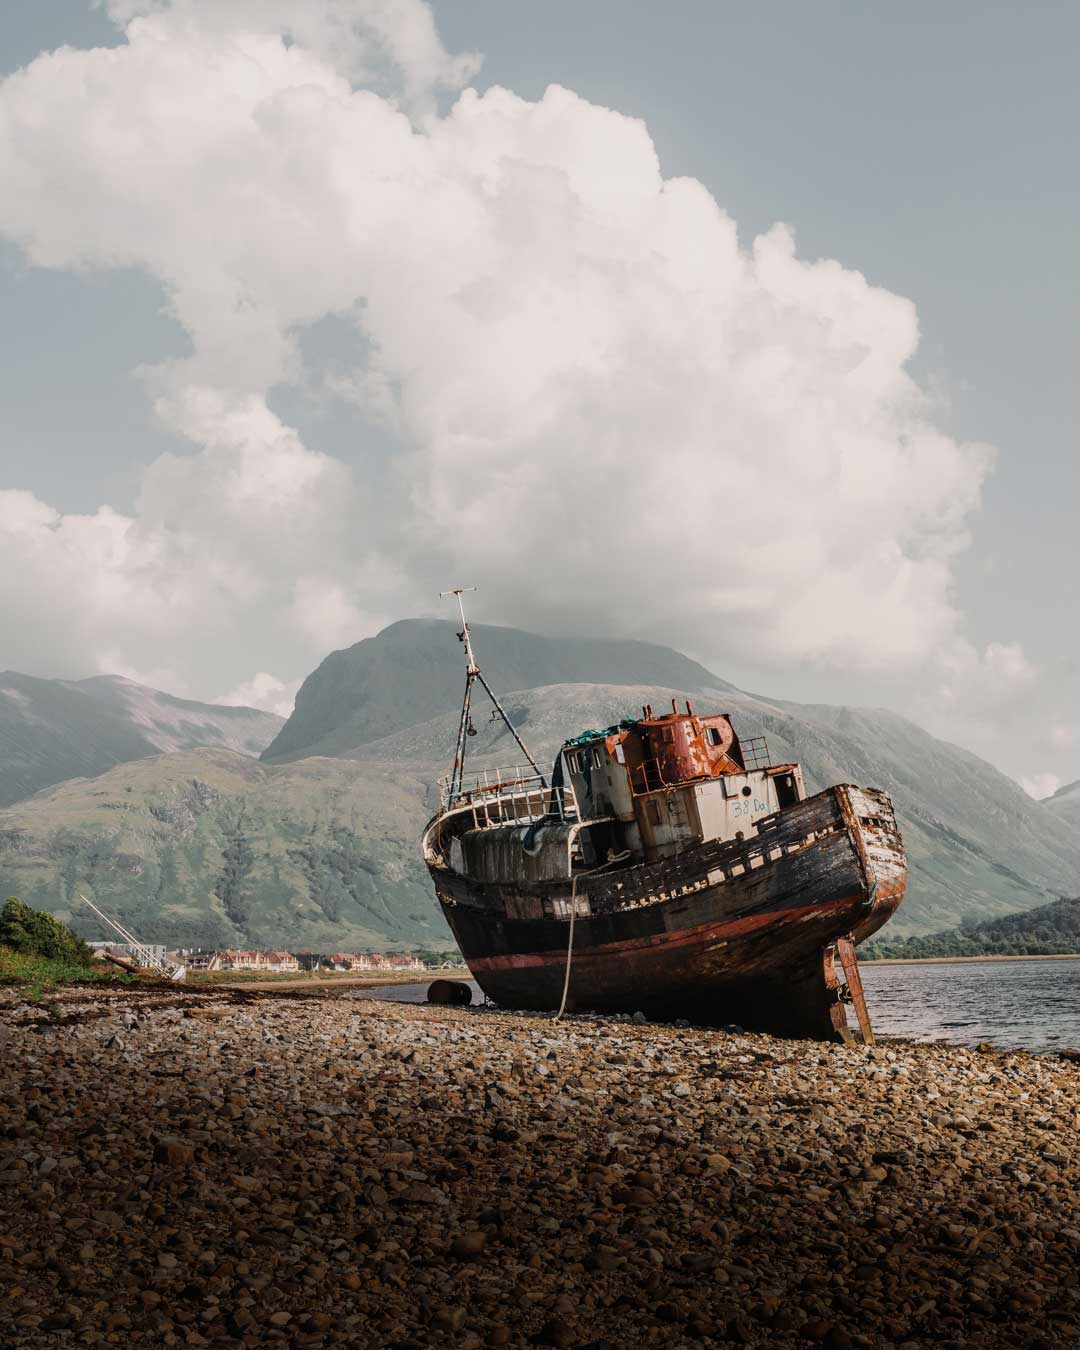 The Old Boat of Caol is also known as the Corpach Shipwreck in Scotland